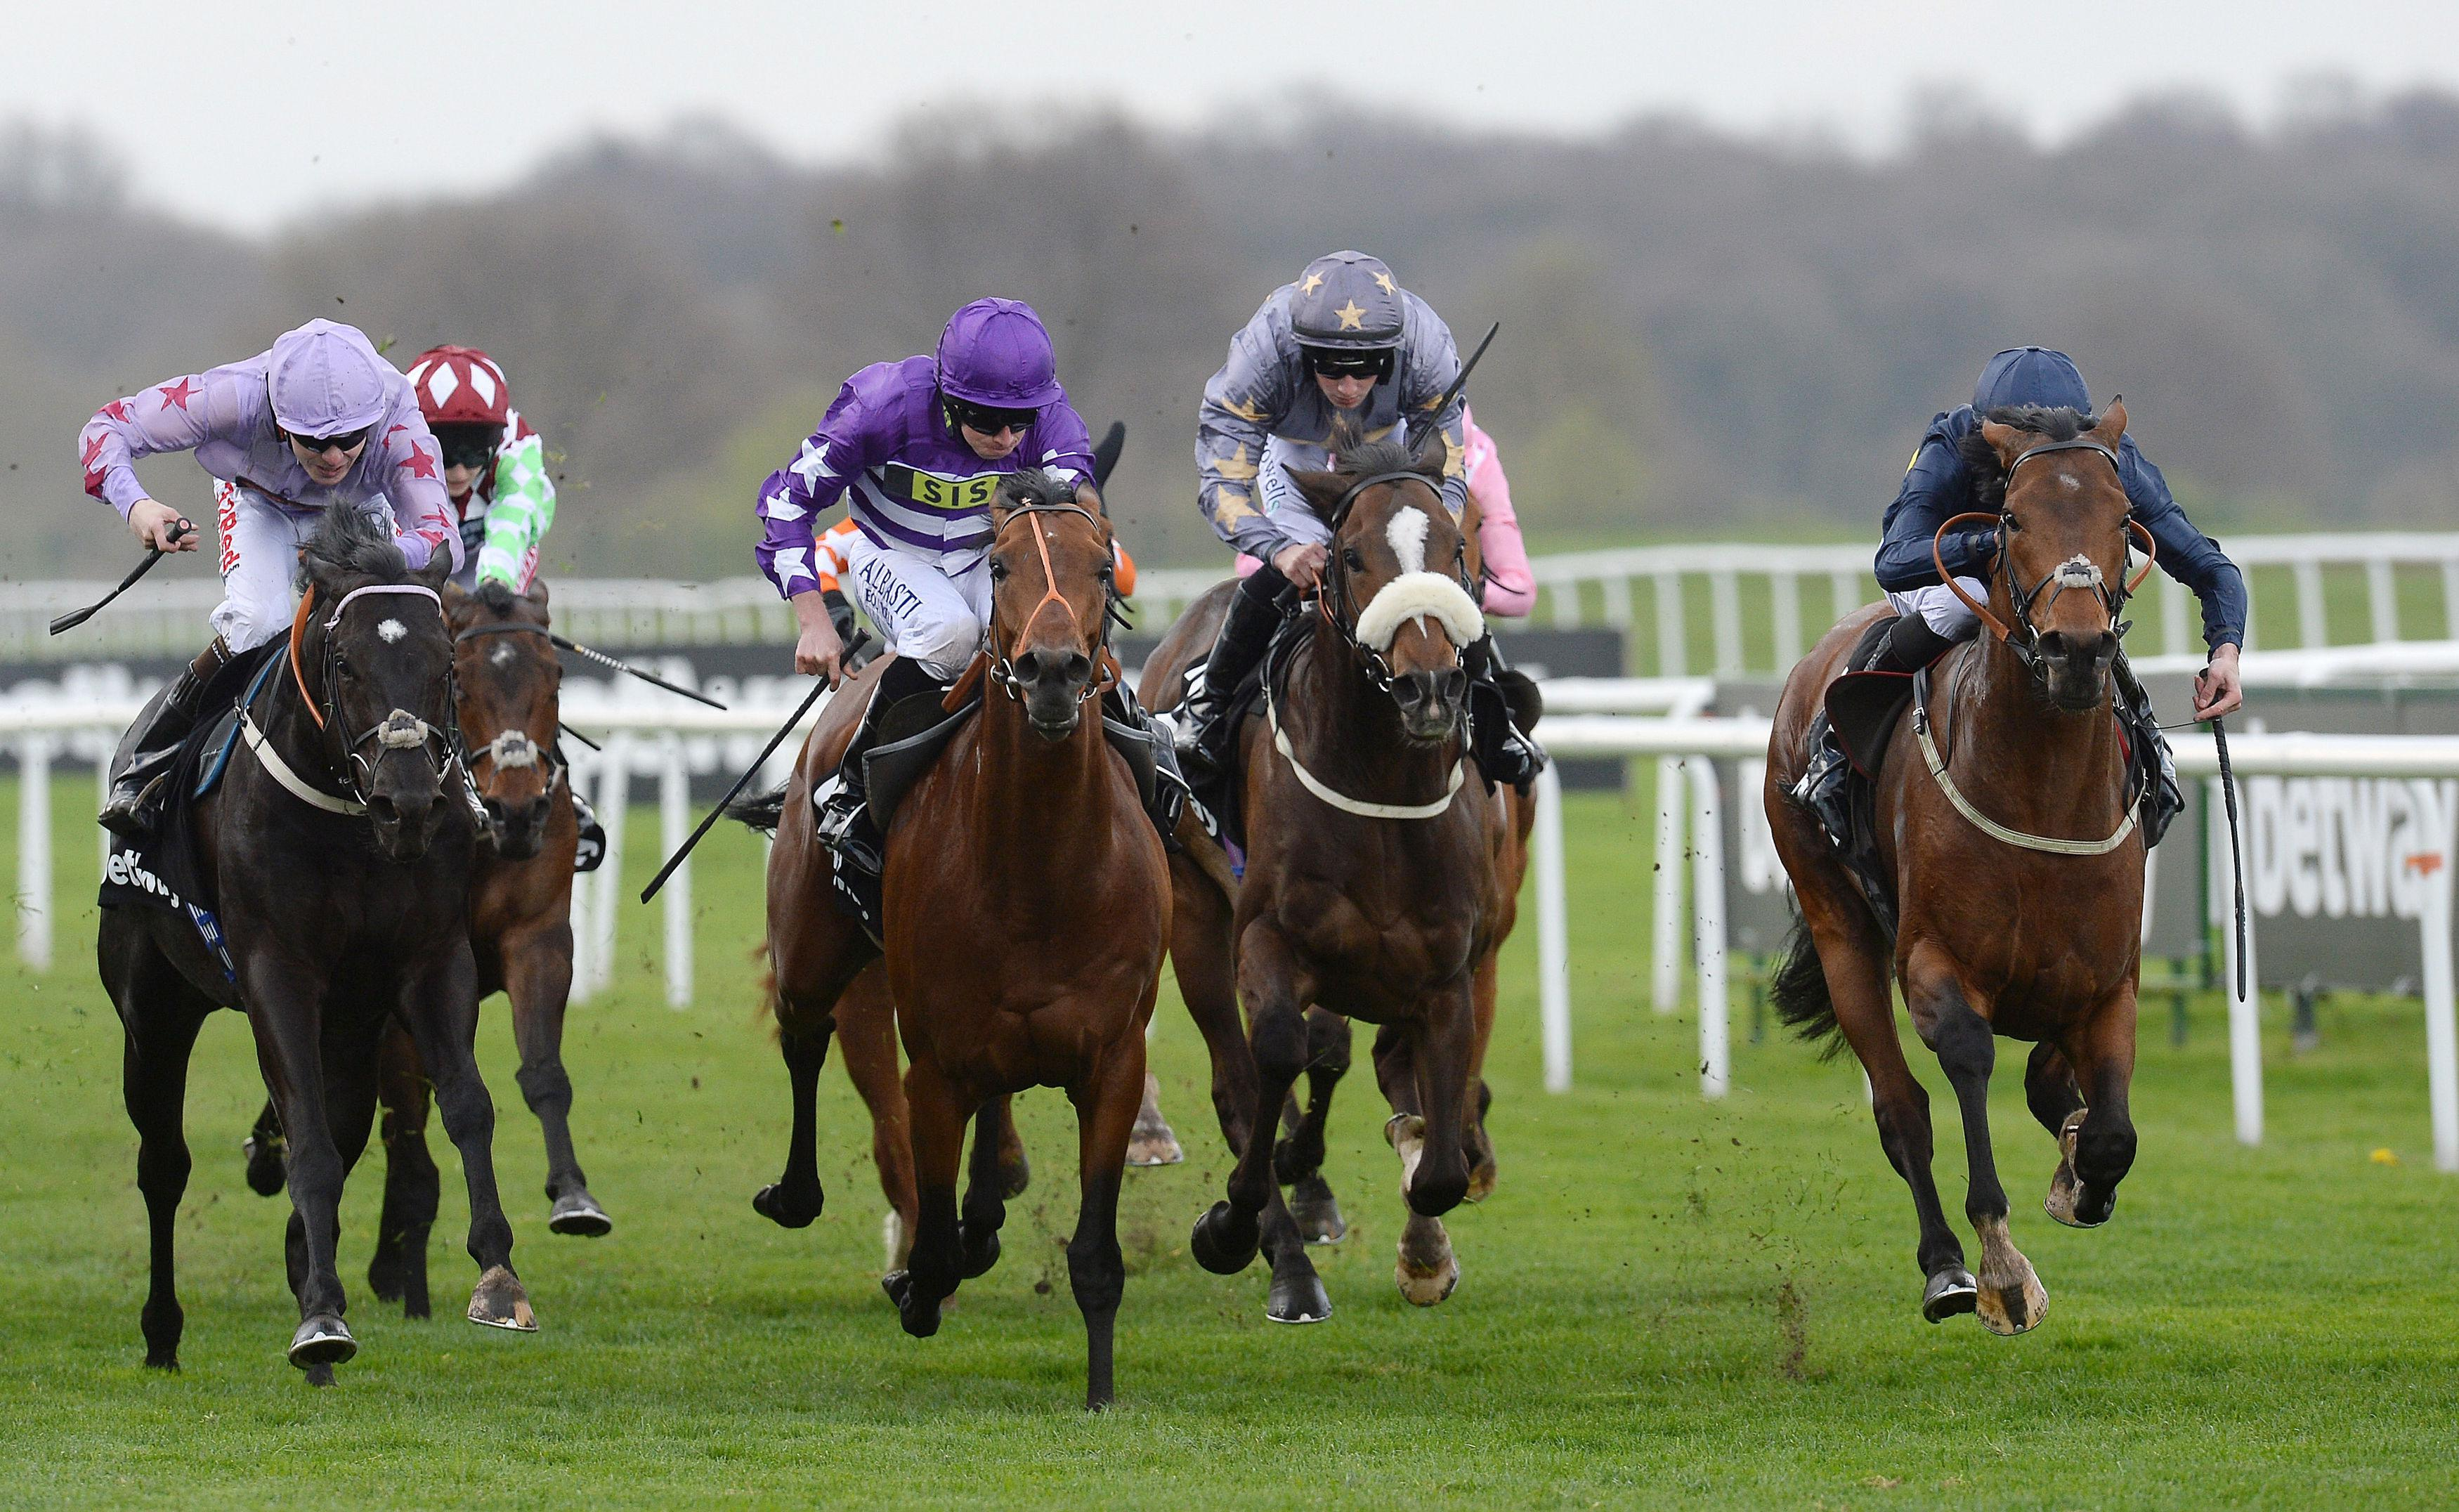 Bravery (right) gamely held on to give David O'Meara a first Lincoln victory last year